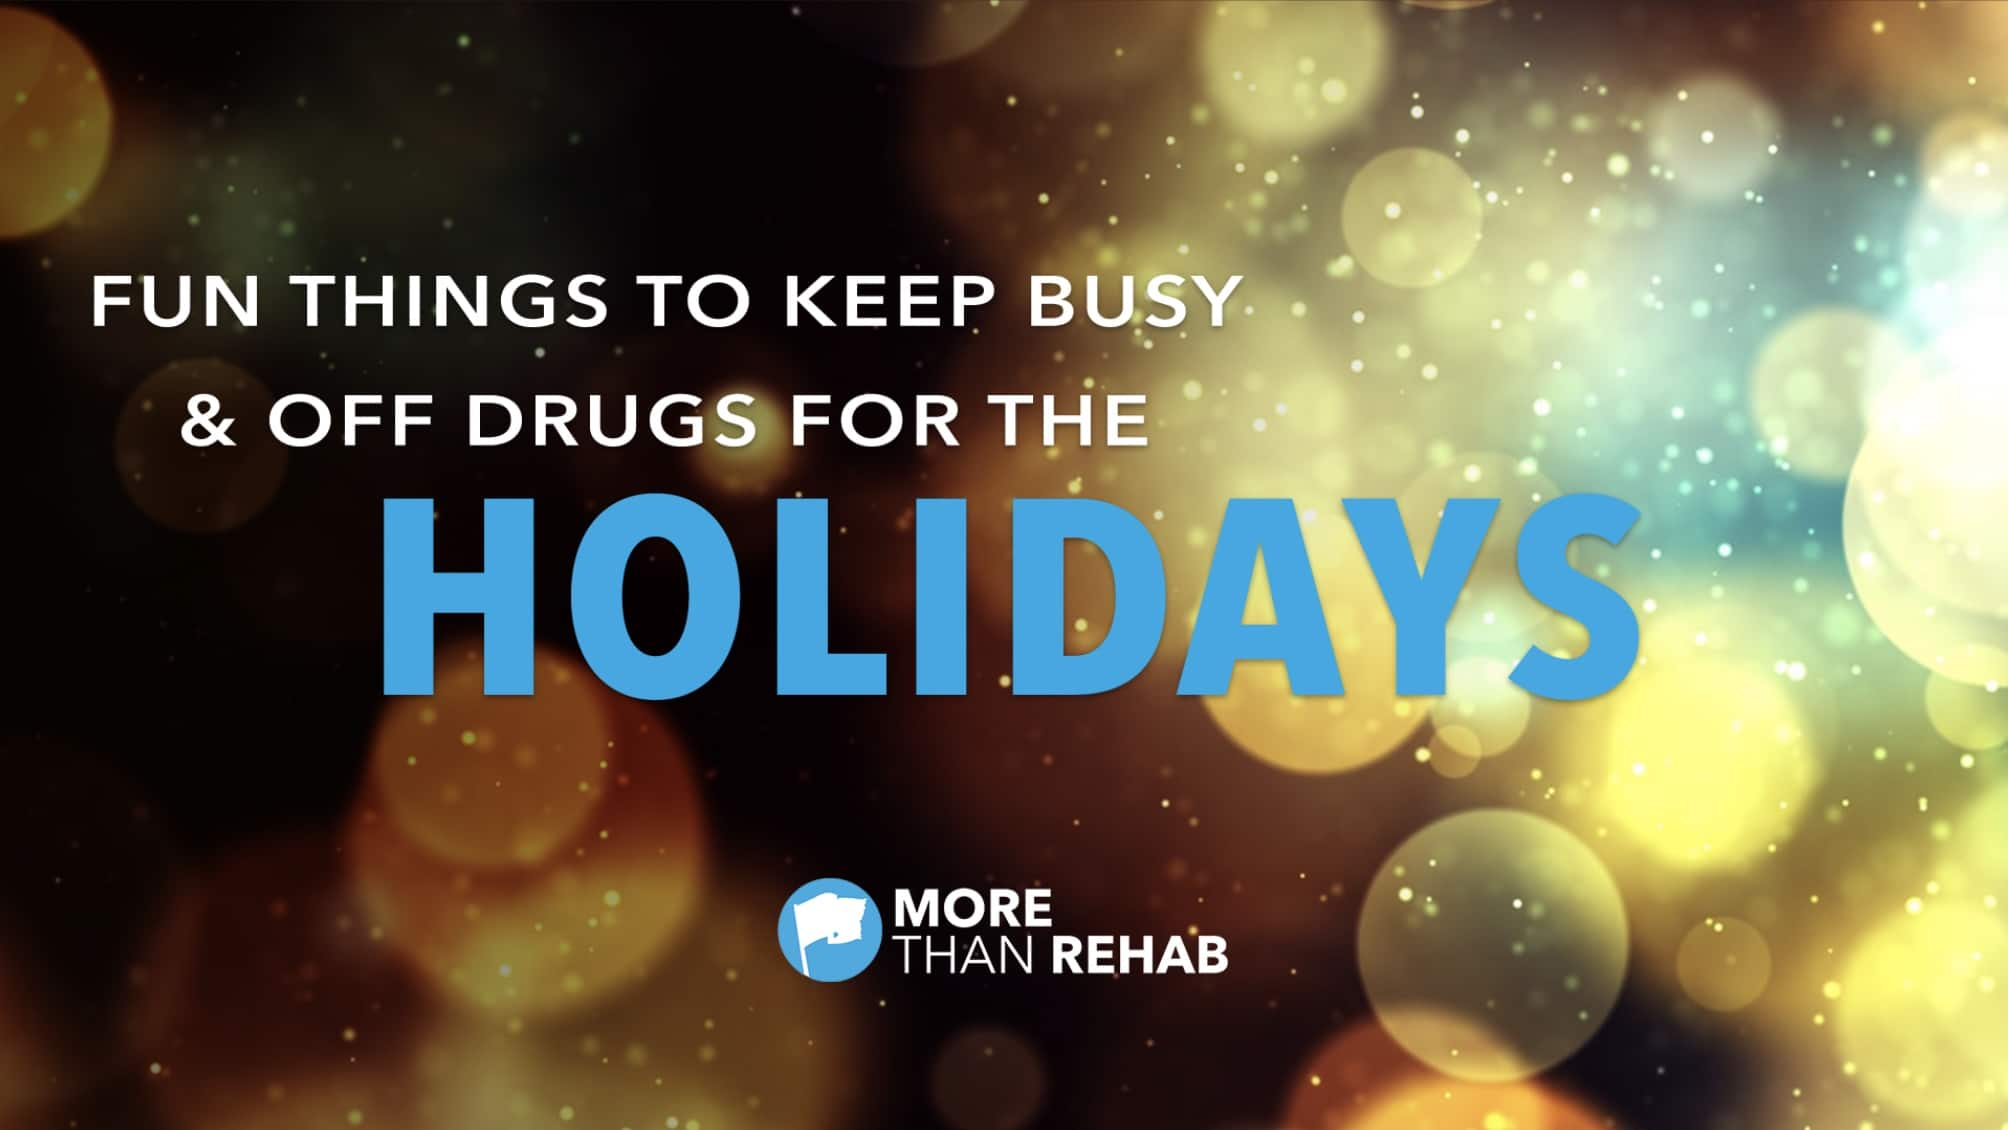 fun-things-to-keep-busy-off-drugs-for-holidays-addiction-recovery-help-Houston-Texas